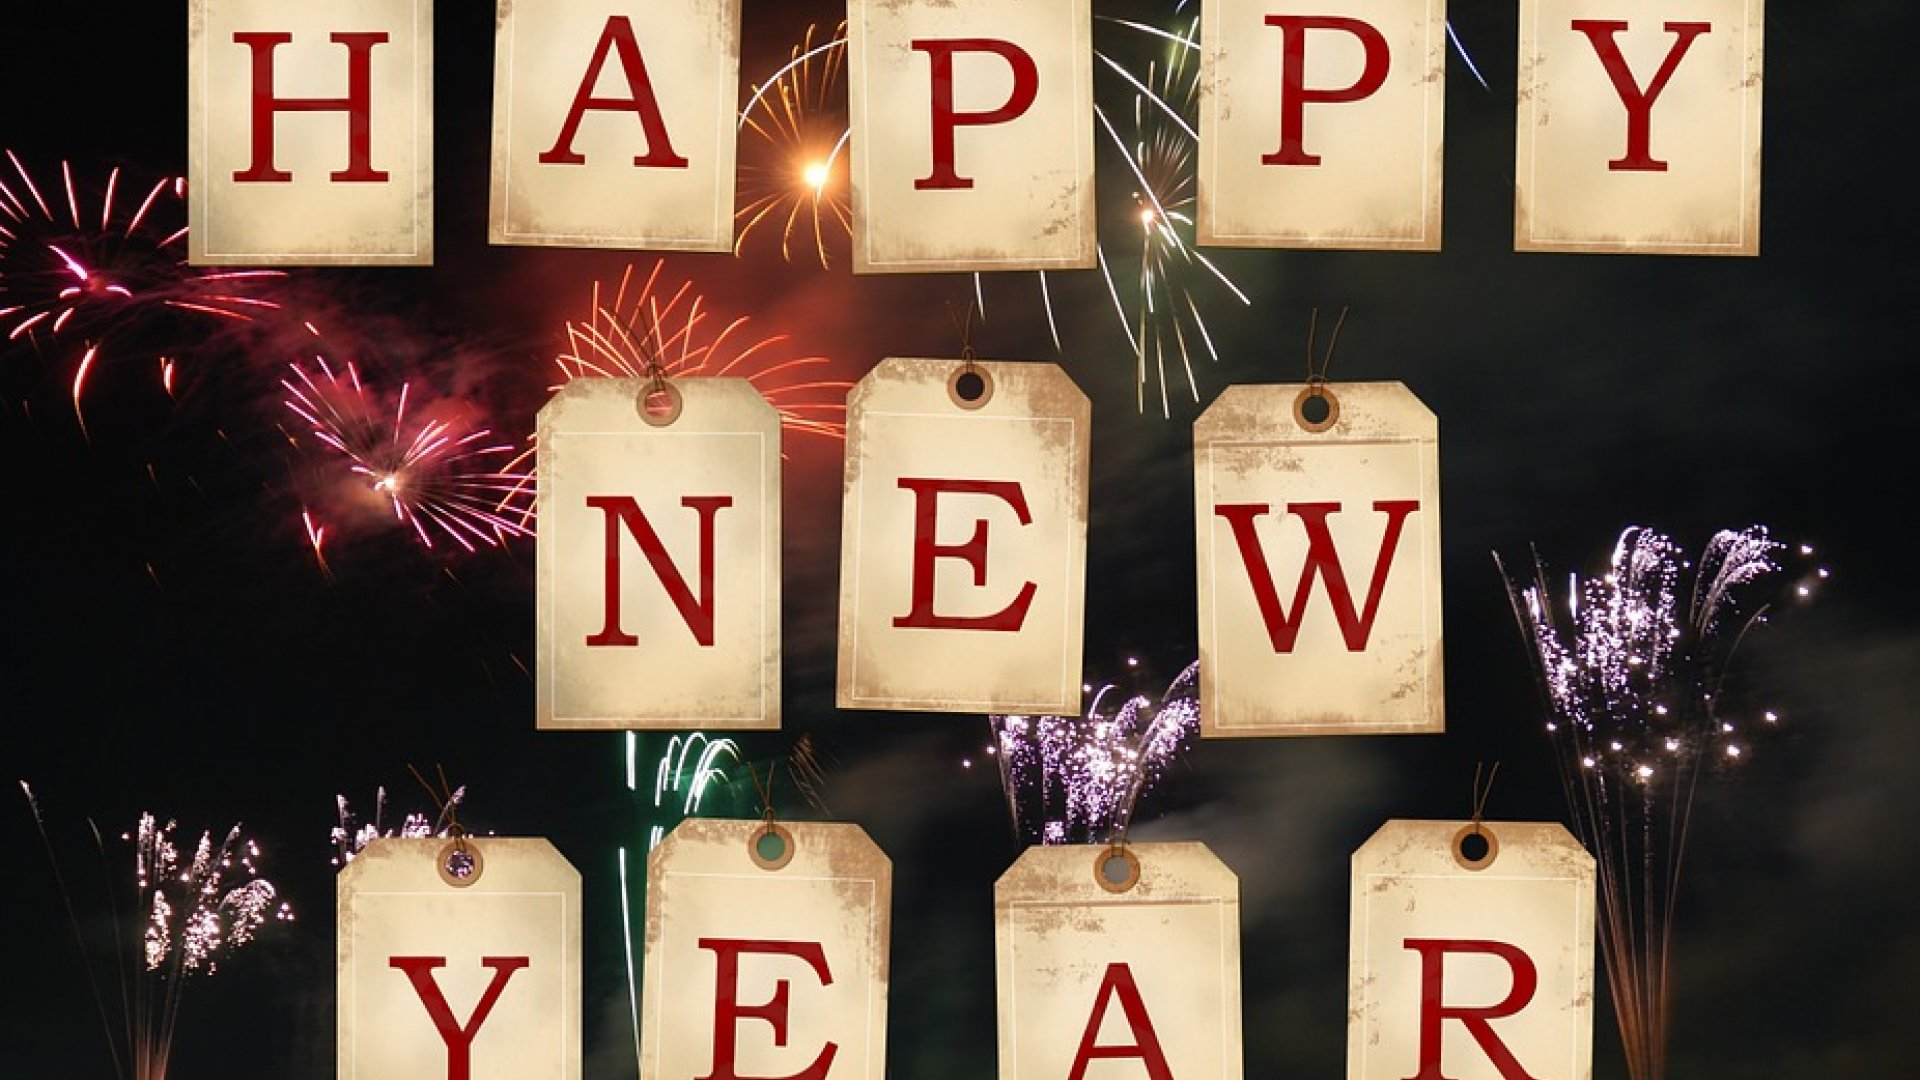 Thank you for this Great Year, HAPPY NEW YEAR